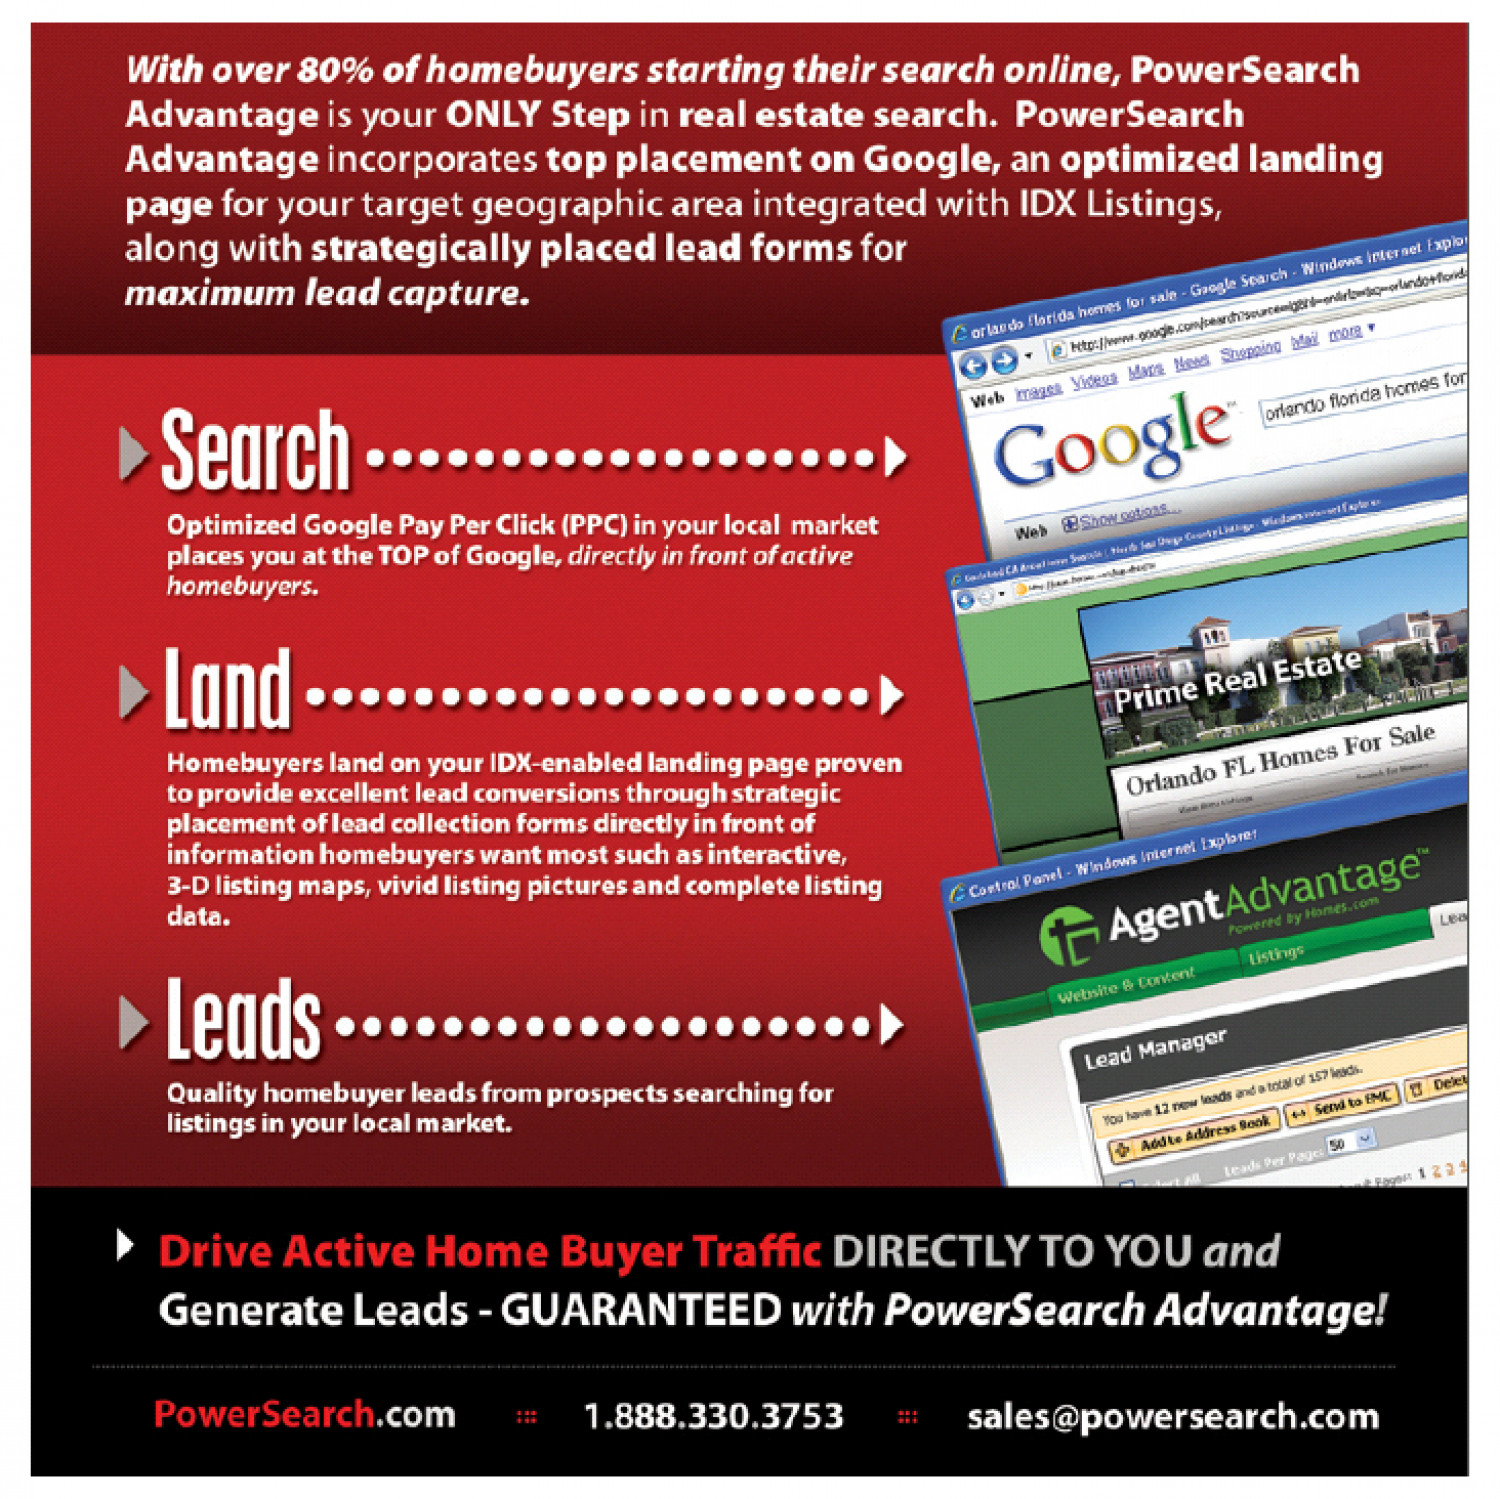 PowerSearch Advantage infographic Infographic